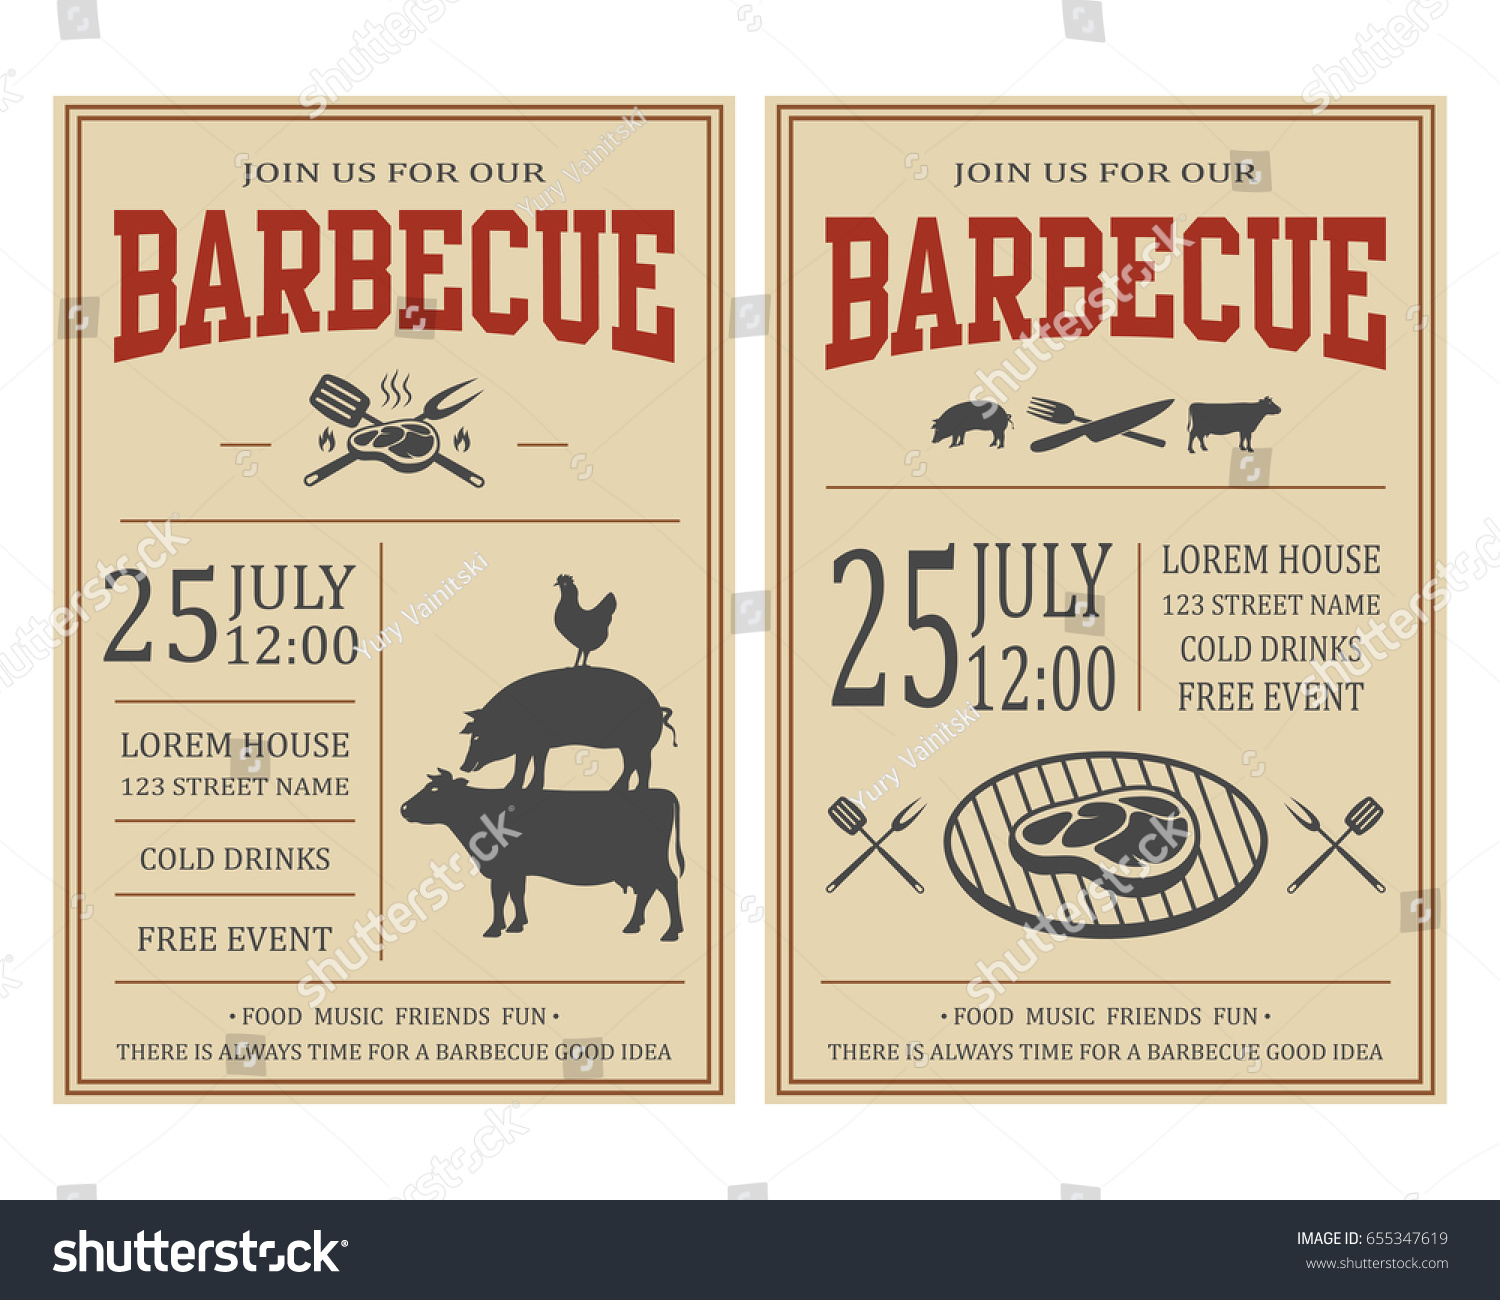 Design templates flyer cookout flyer writing a descriptive essay design templates flyer cookout flyer business marketing sample stock vector vintage barbecue party invitation bbq food pronofoot35fo Images